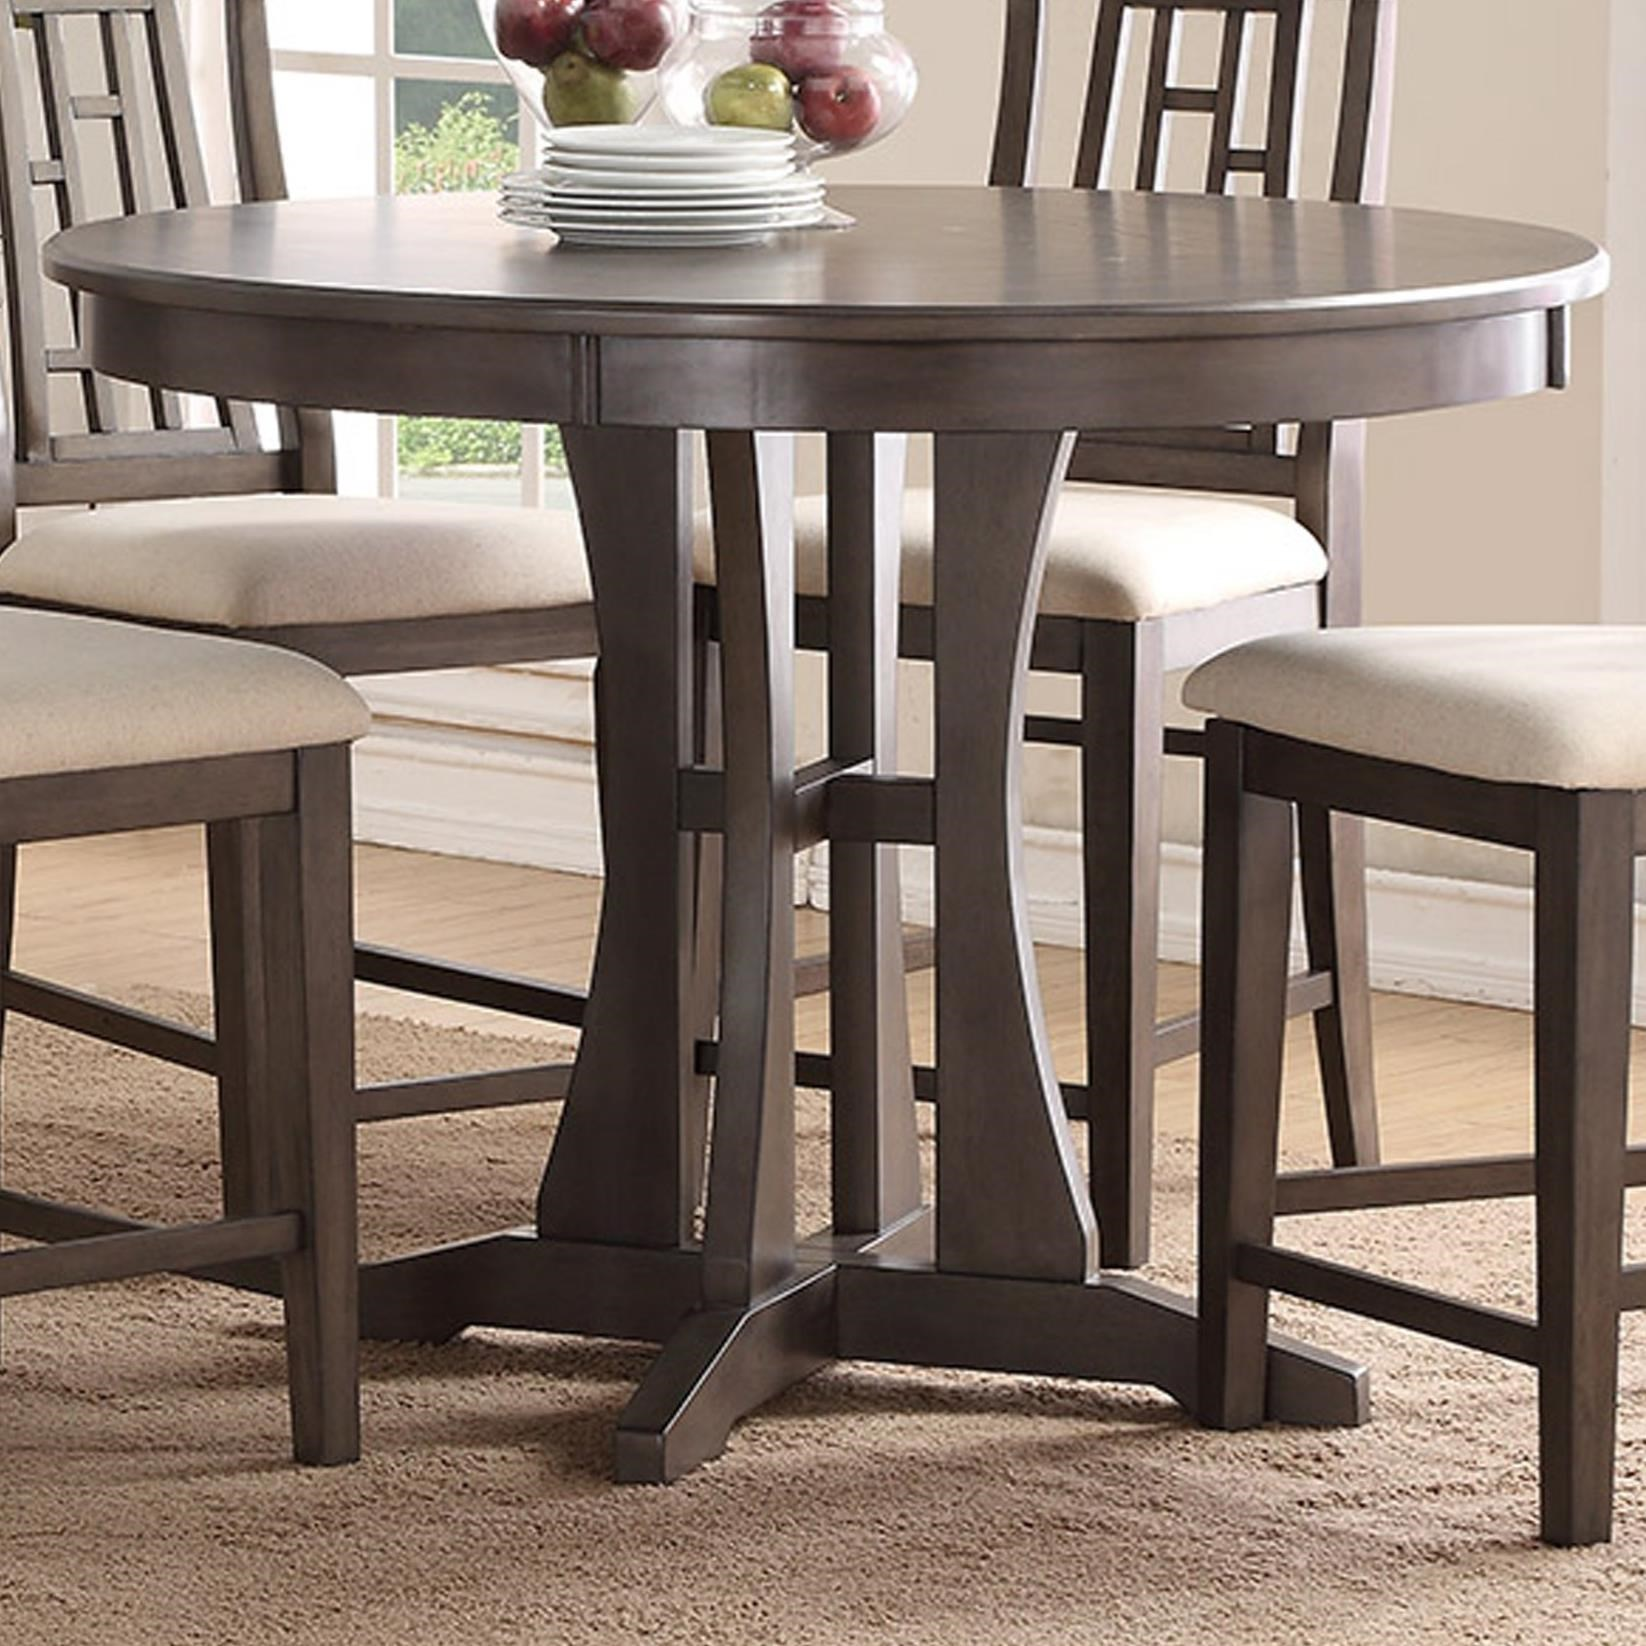 Modesto 48 Inch Round Counter Dining Table With Pedestal Base By Bernards